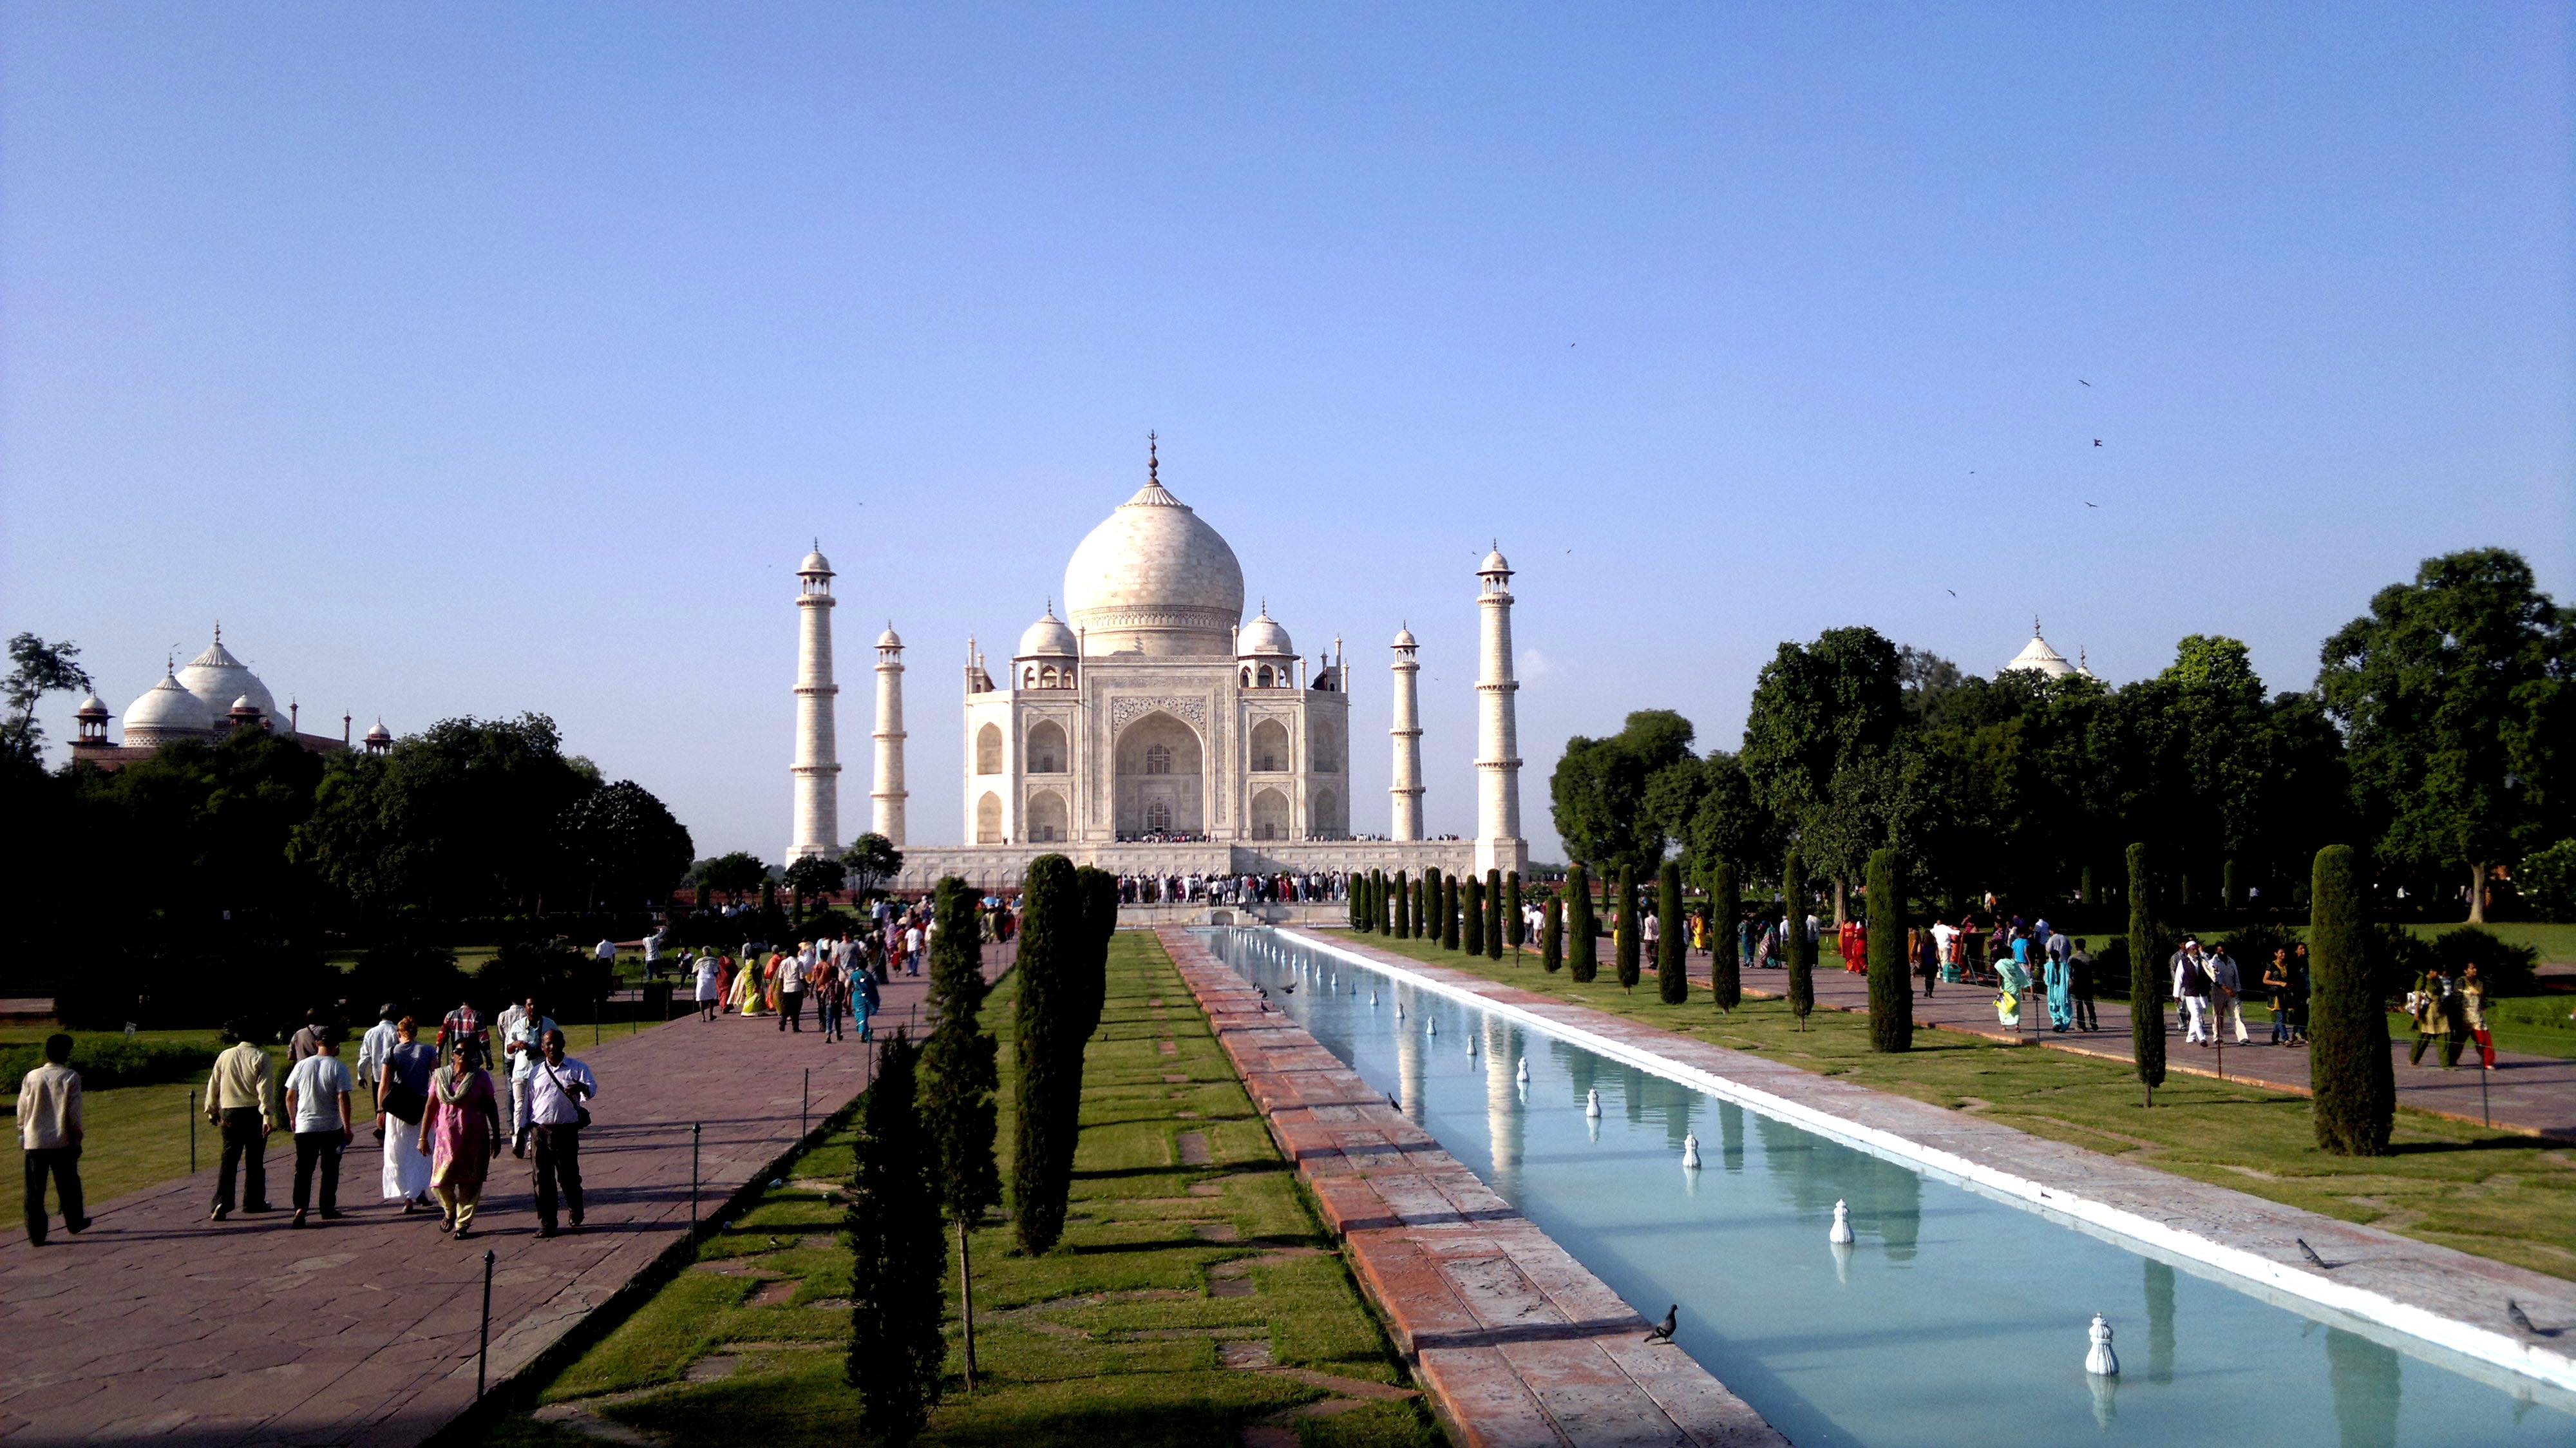 What Really Ails the Taj Mahal?